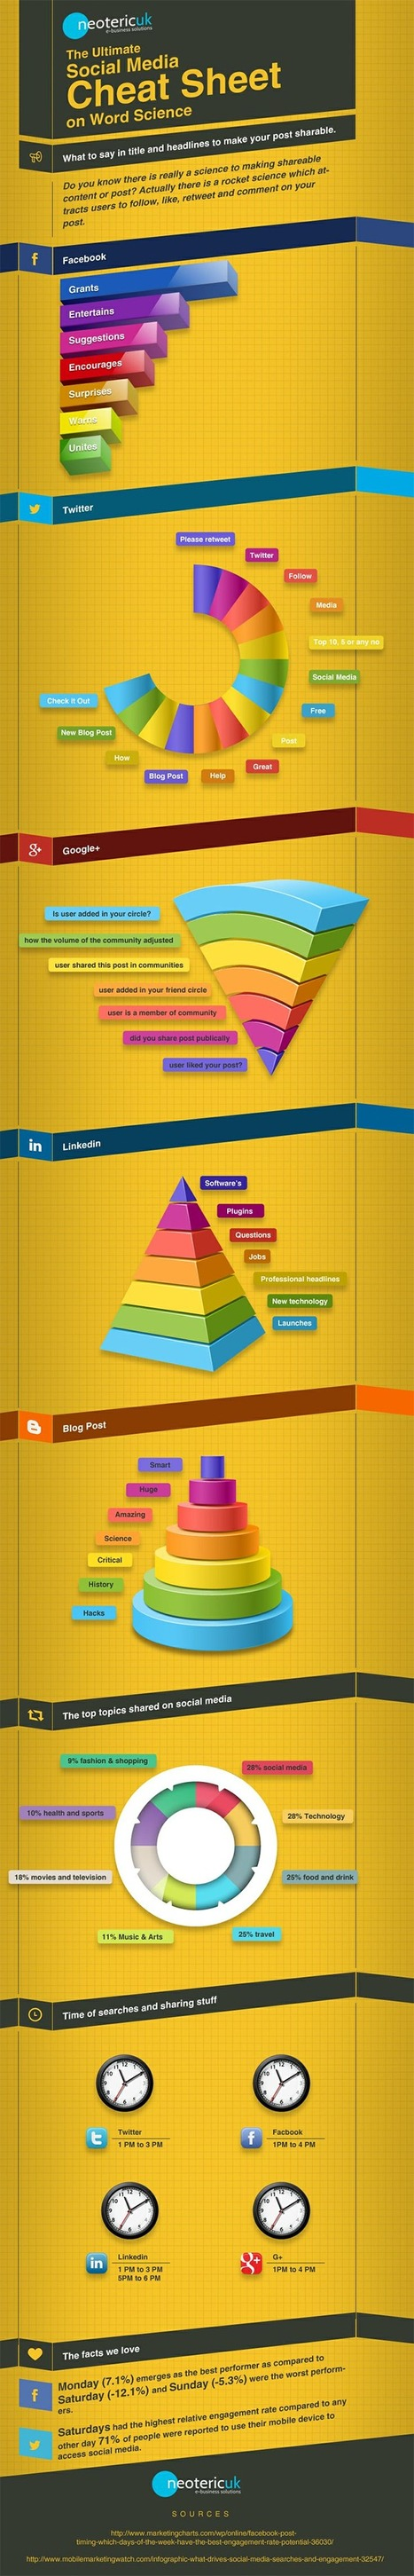 Which Words Drive the Most Engagement on Facebook, Twitter, Google+, LinkedIn & Blogs?  #infographic | MarketingHits | Scoop.it